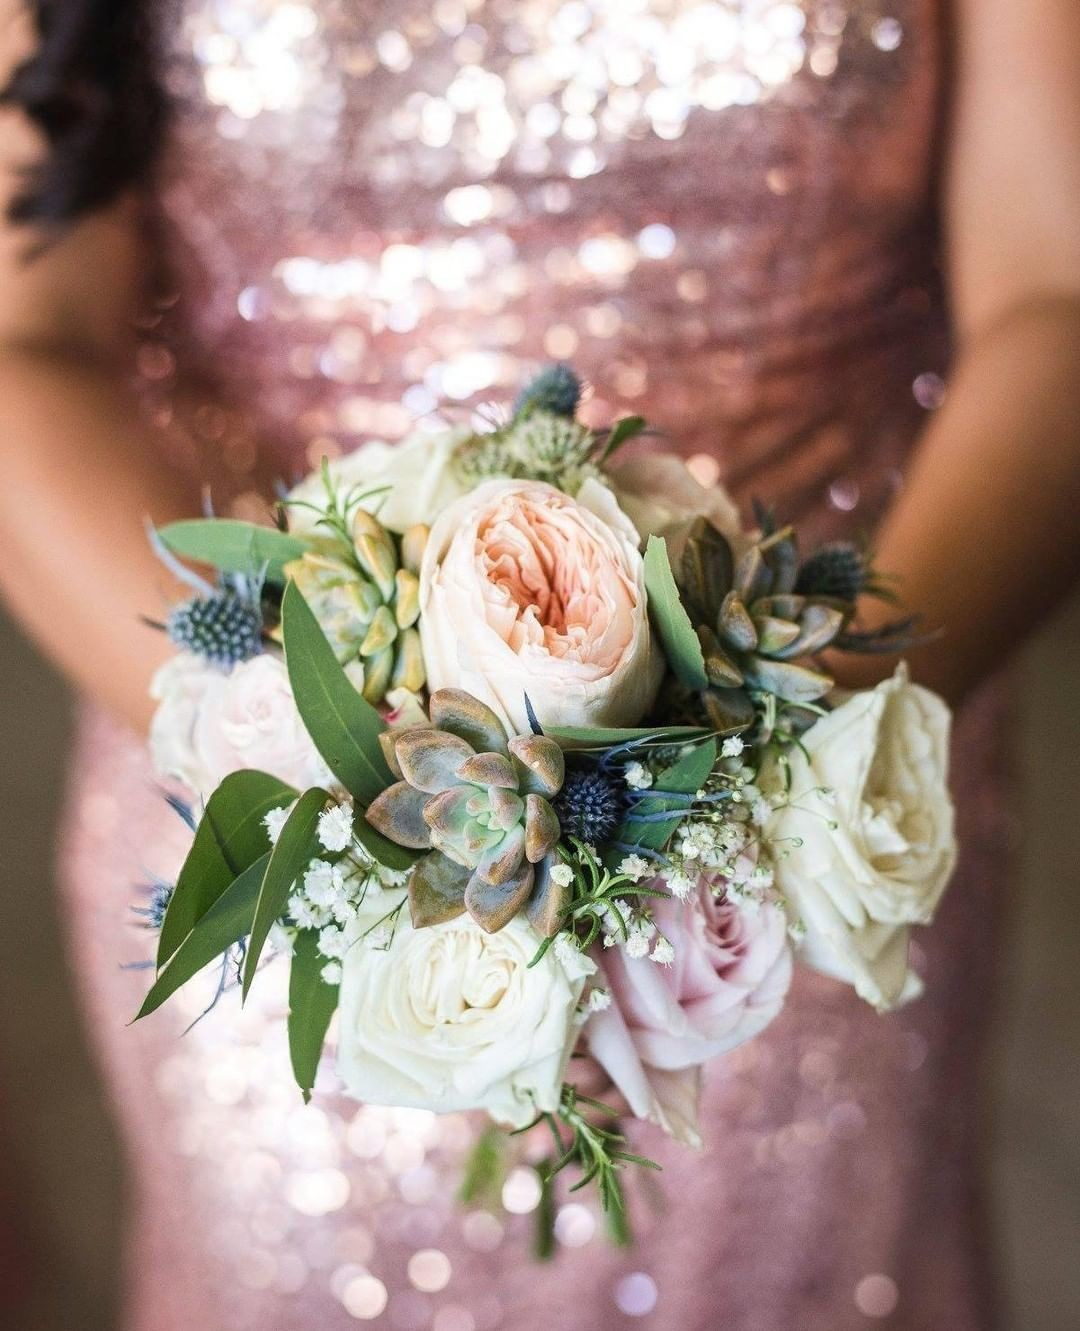 How pretty are these delicate blooms set against this Bridesmaid's pretty rose gold dress?